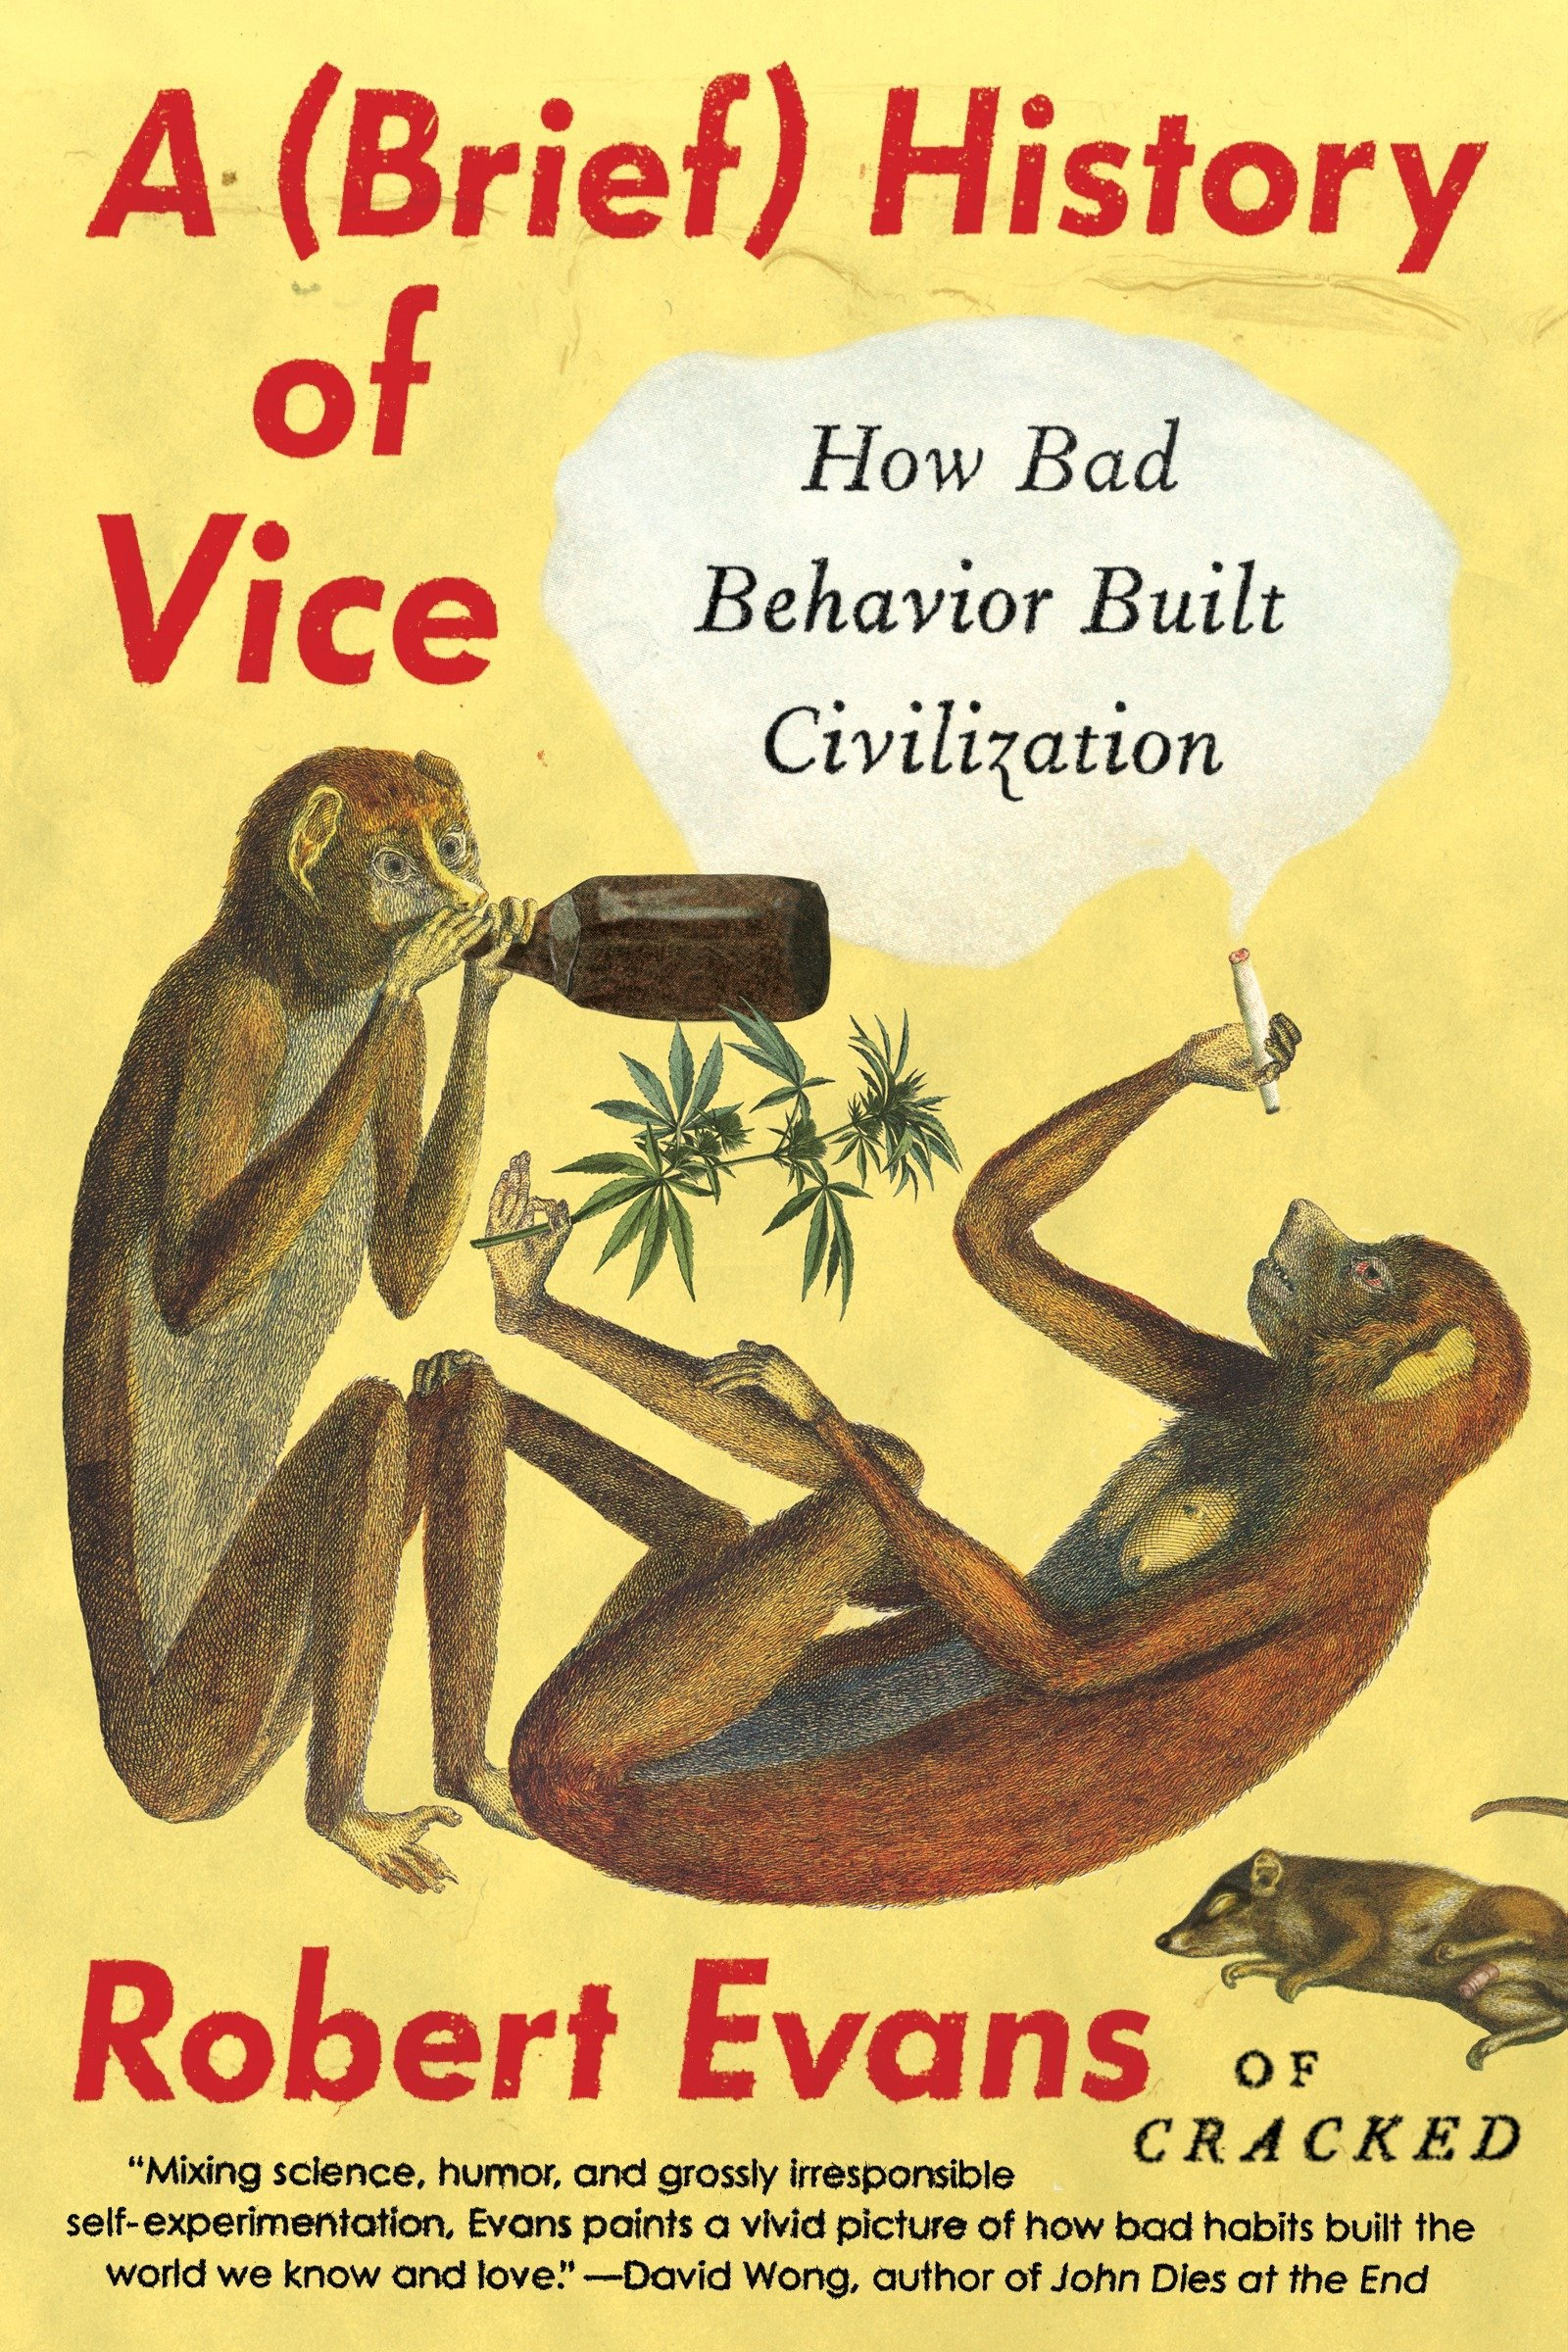 A Brief History of Vice: How Bad Behavior Built Civilization